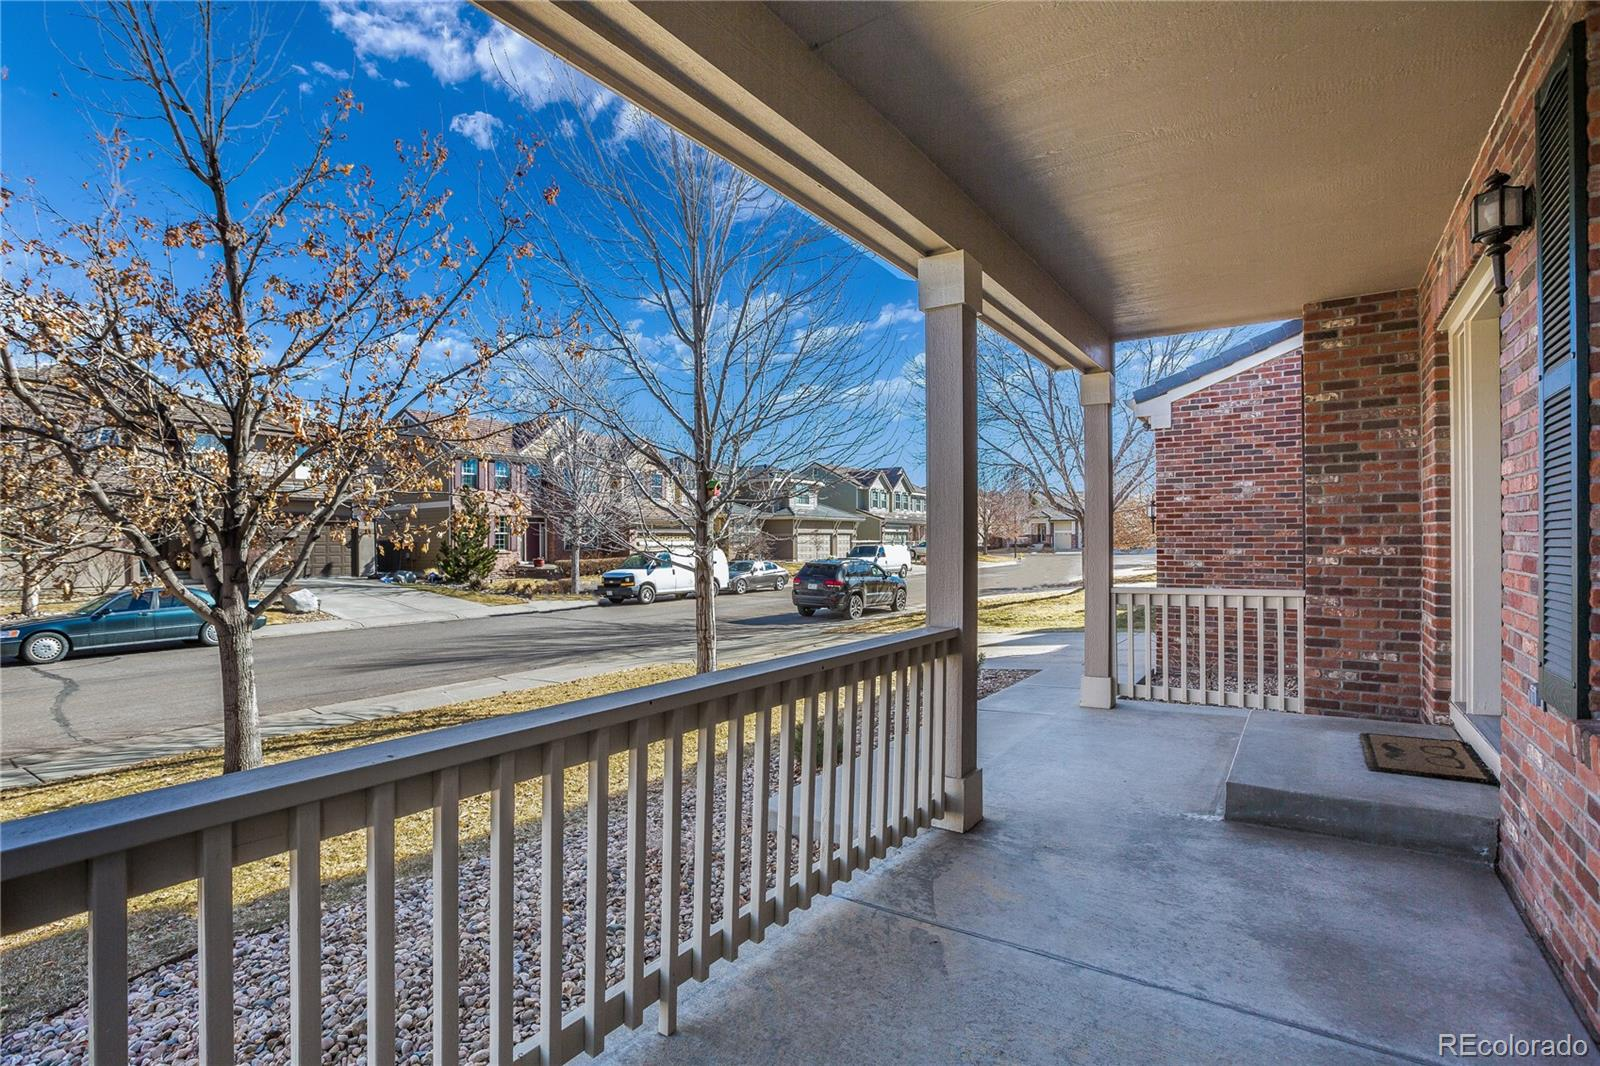 MLS# 6938422 - 3 - 5971 S Helena Court, Centennial, CO 80016